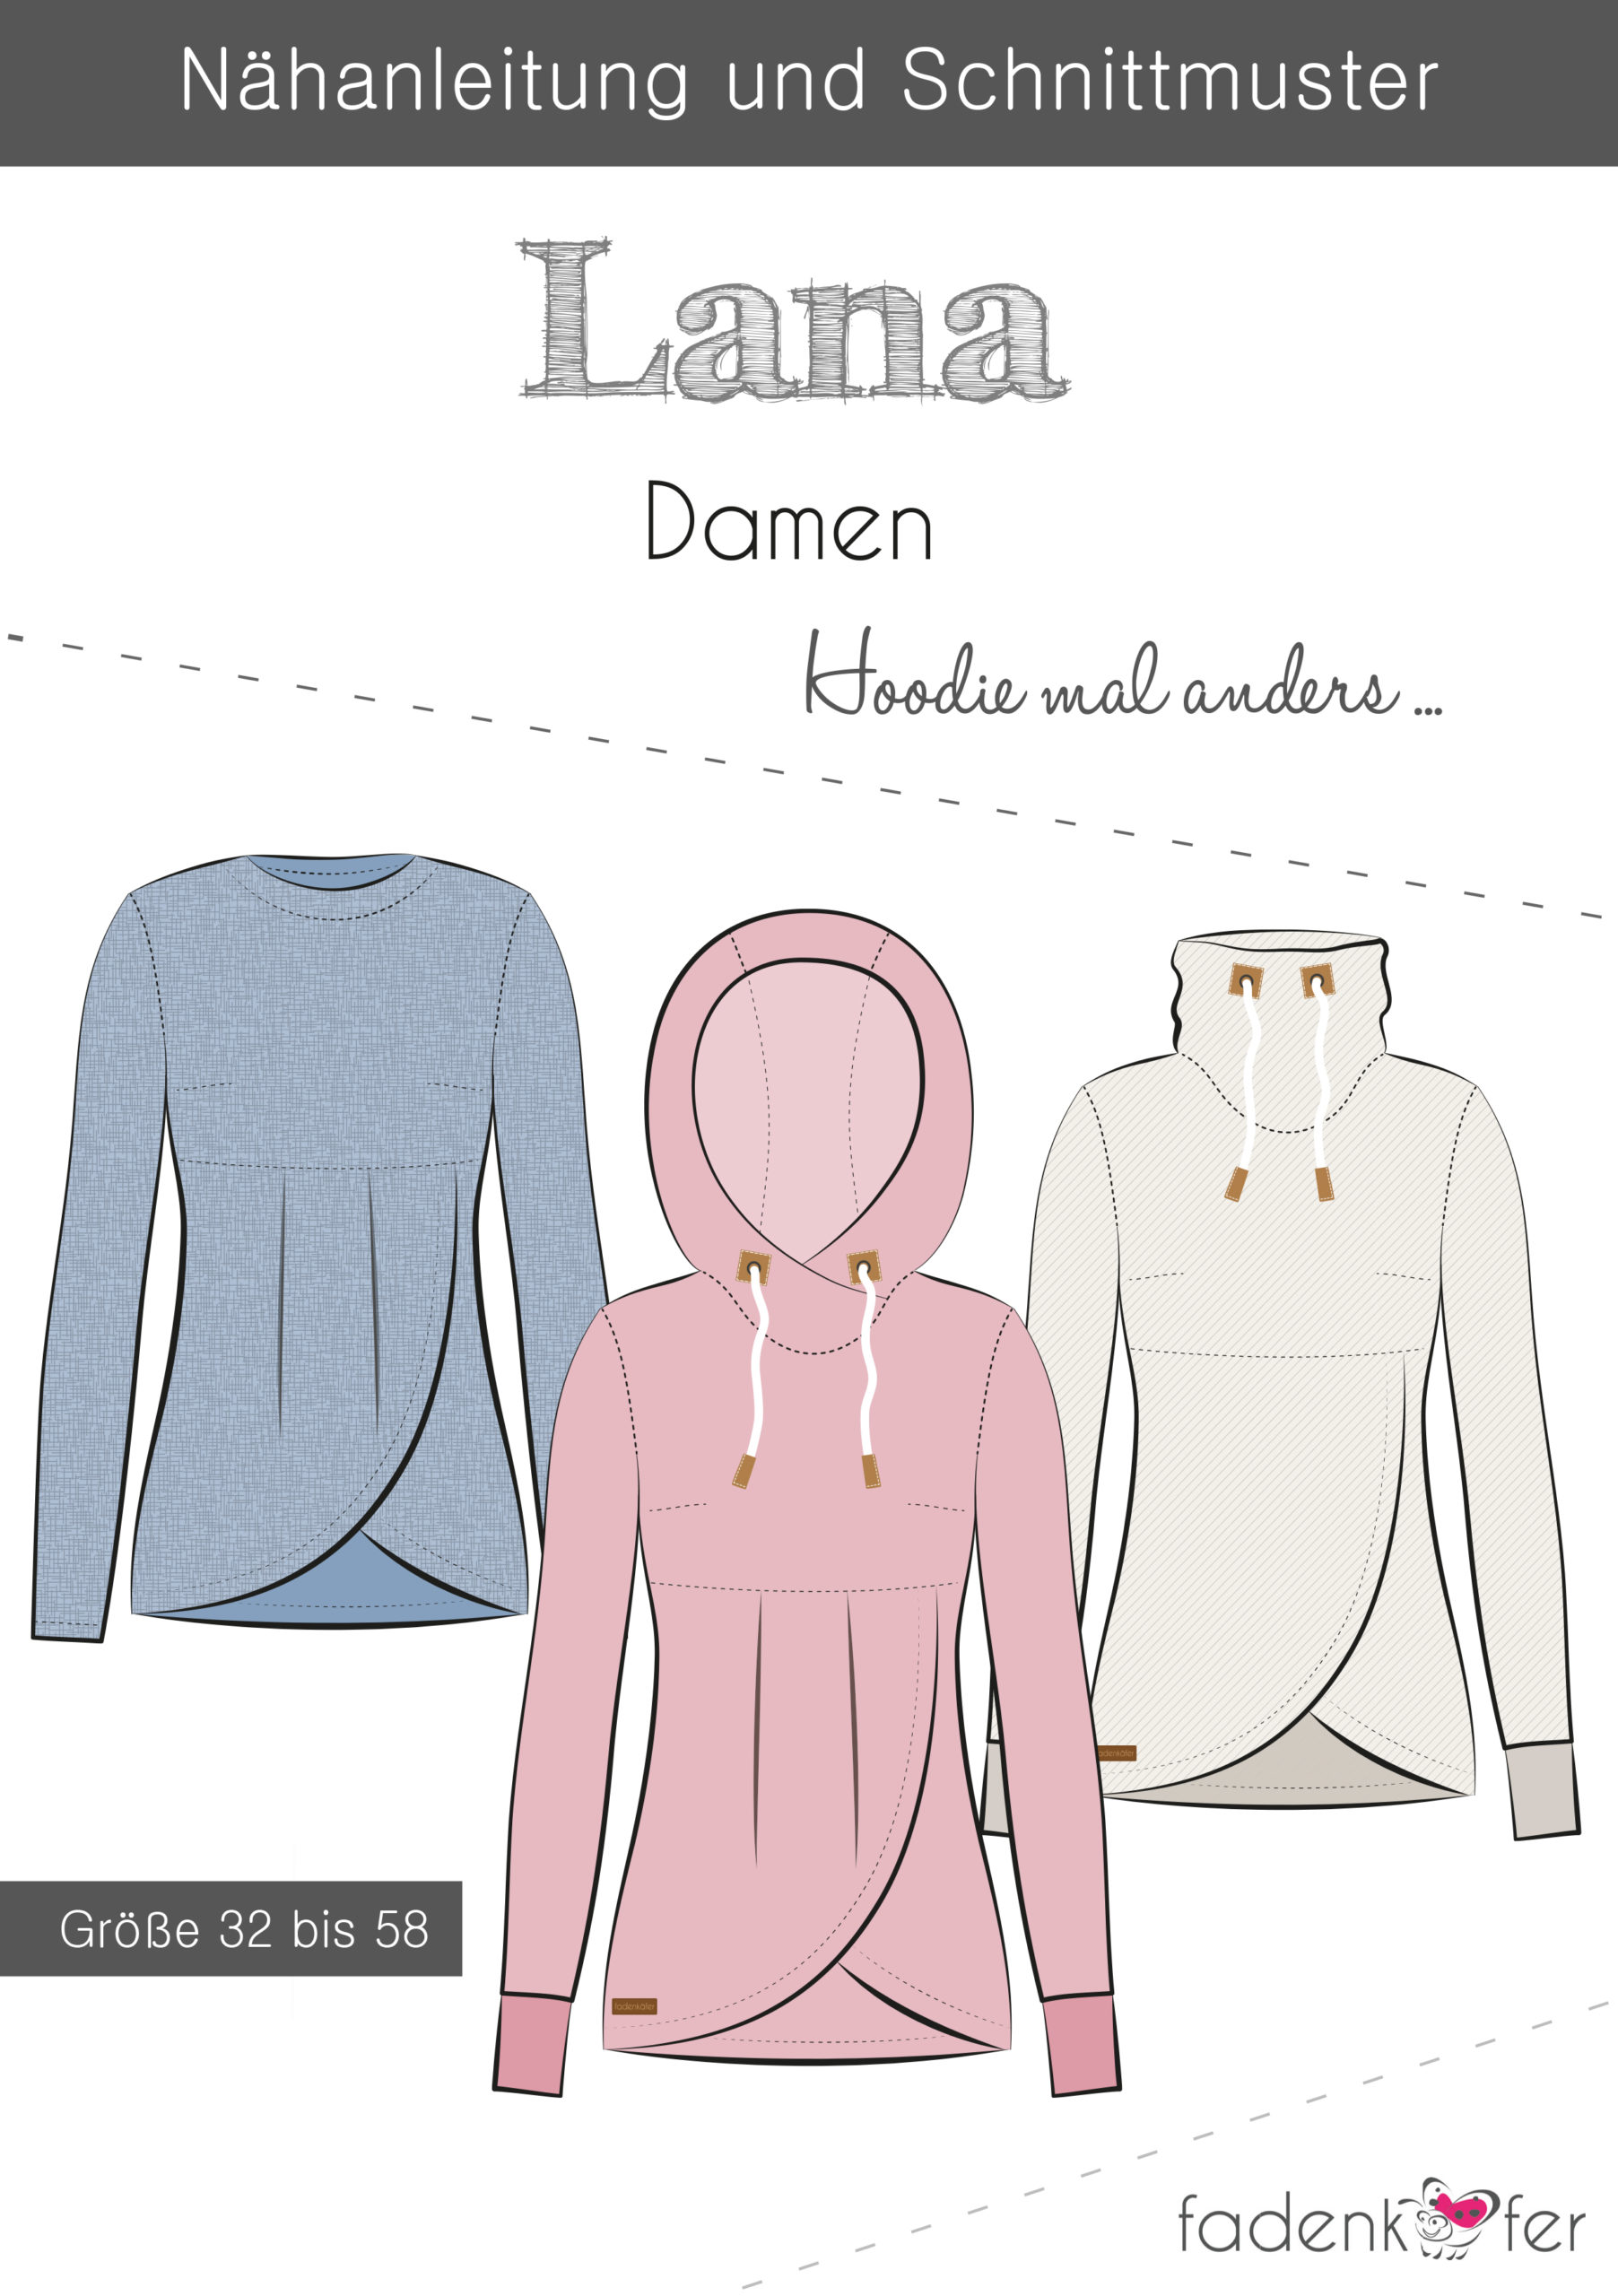 Sewing pattern Lana women's hoodie and more 32-58 thread beetles included Stoffträume4youSewing pattern Lana women's hoodie and more 32-58 thread beetles included Stoffträume4you